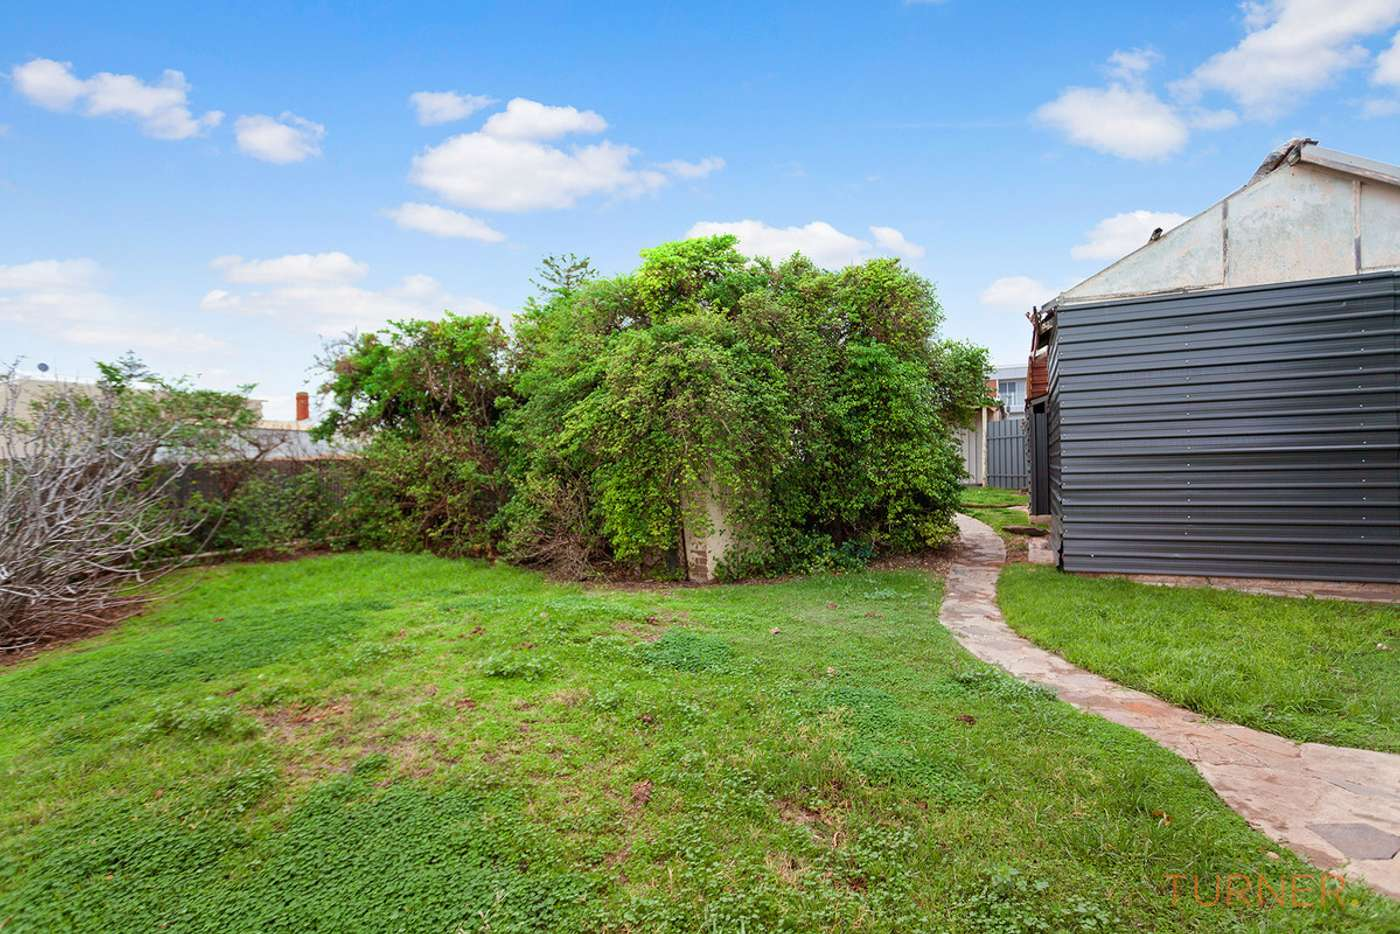 Fifth view of Homely house listing, 13 Grundy Terrace, Christies Beach SA 5165